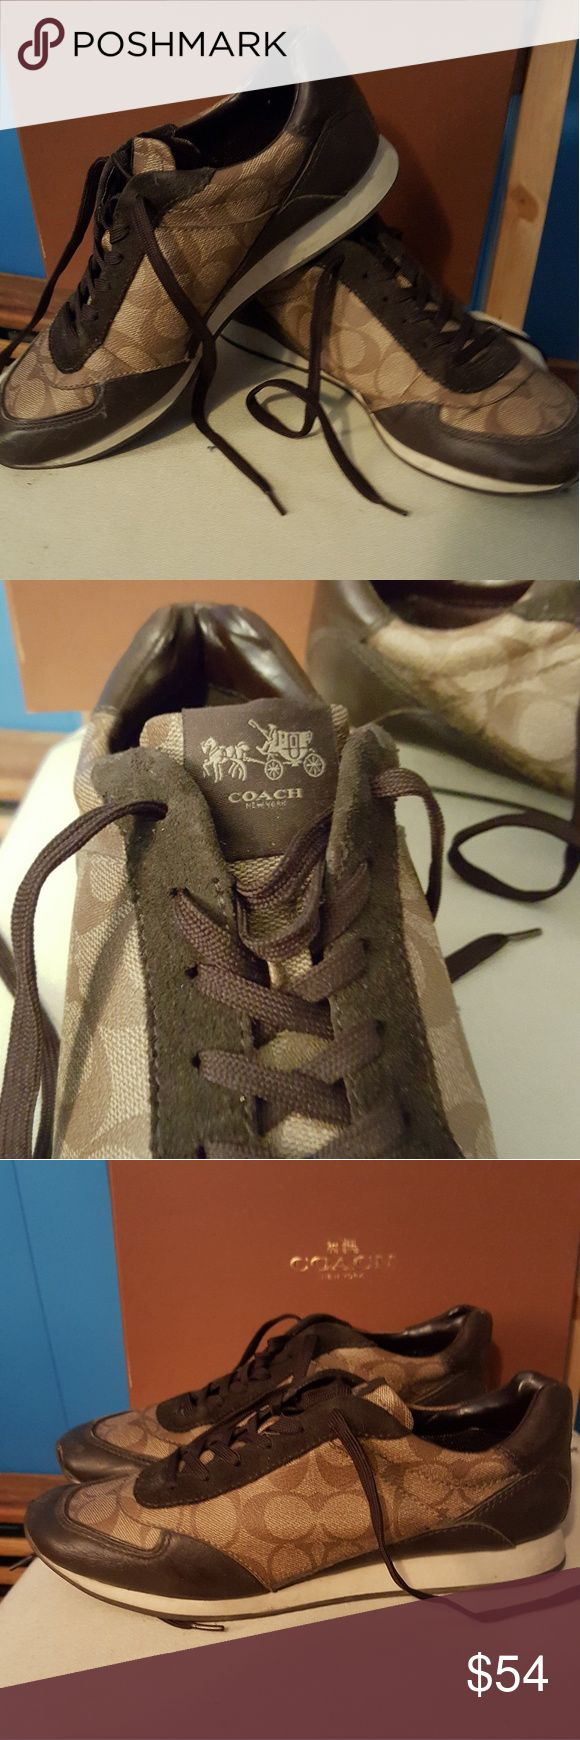 Coach sneaker Lightly worn coach sneakers. Dark brown and tan. Coach Shoes Sneakers